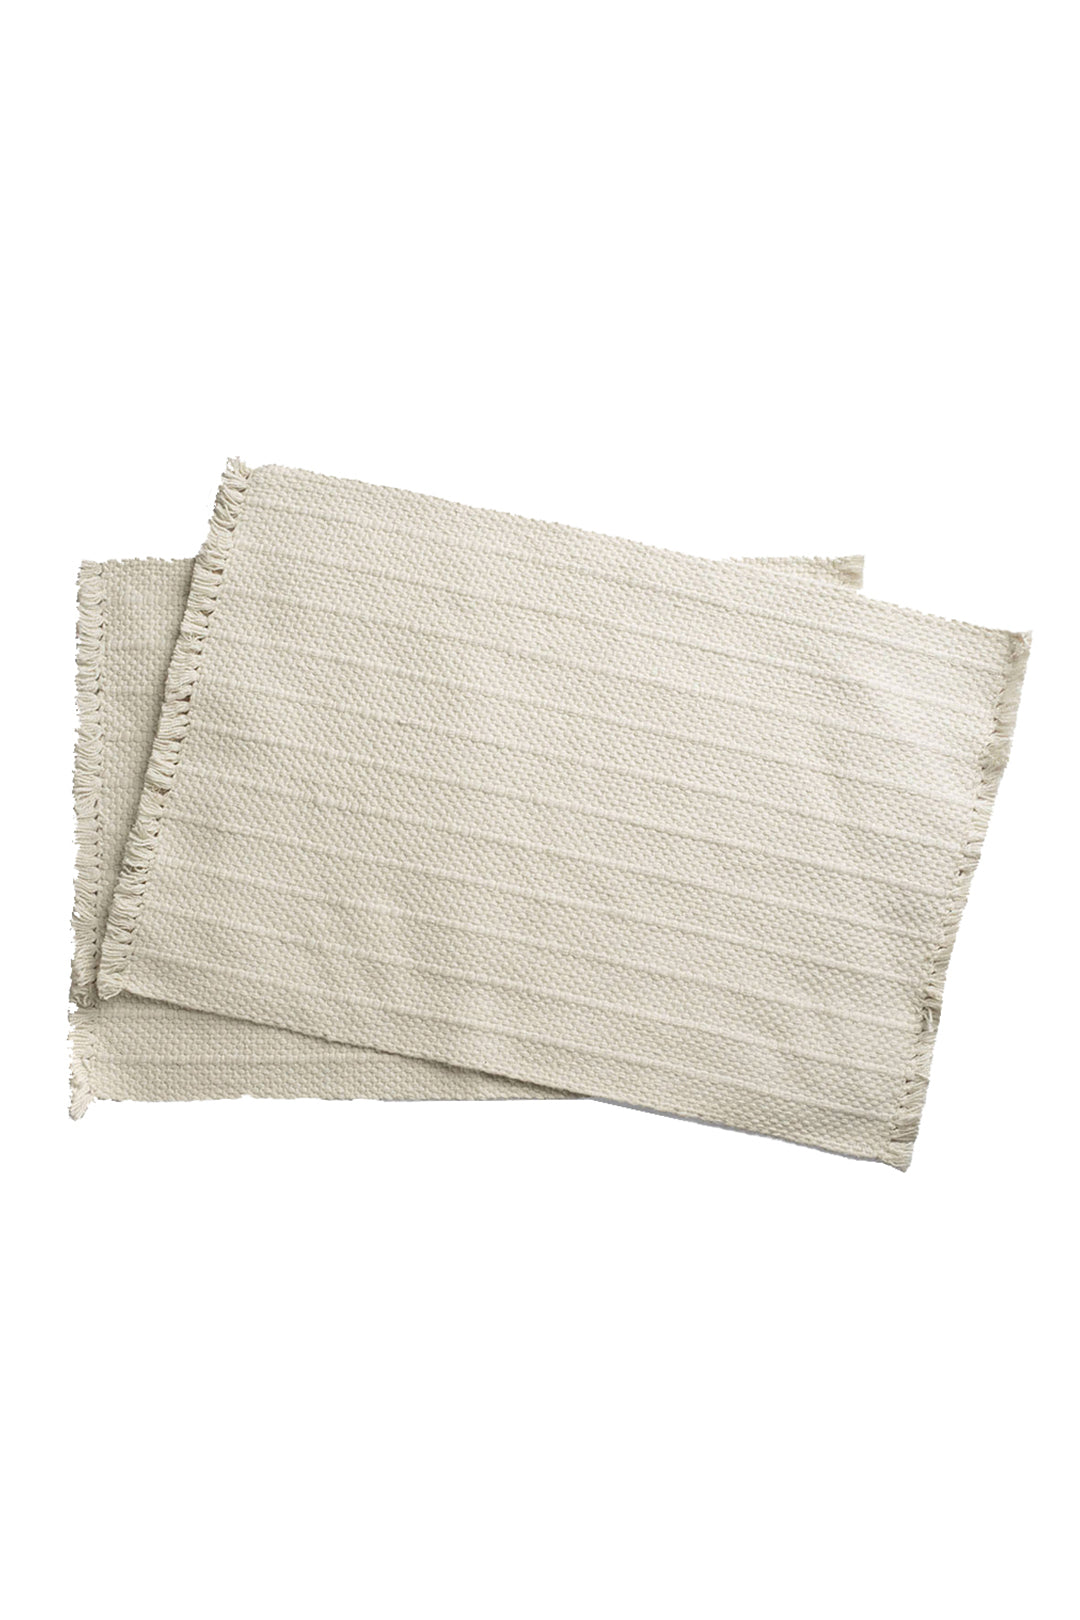 Woven Cotton Placemat - Cream, Set of 2